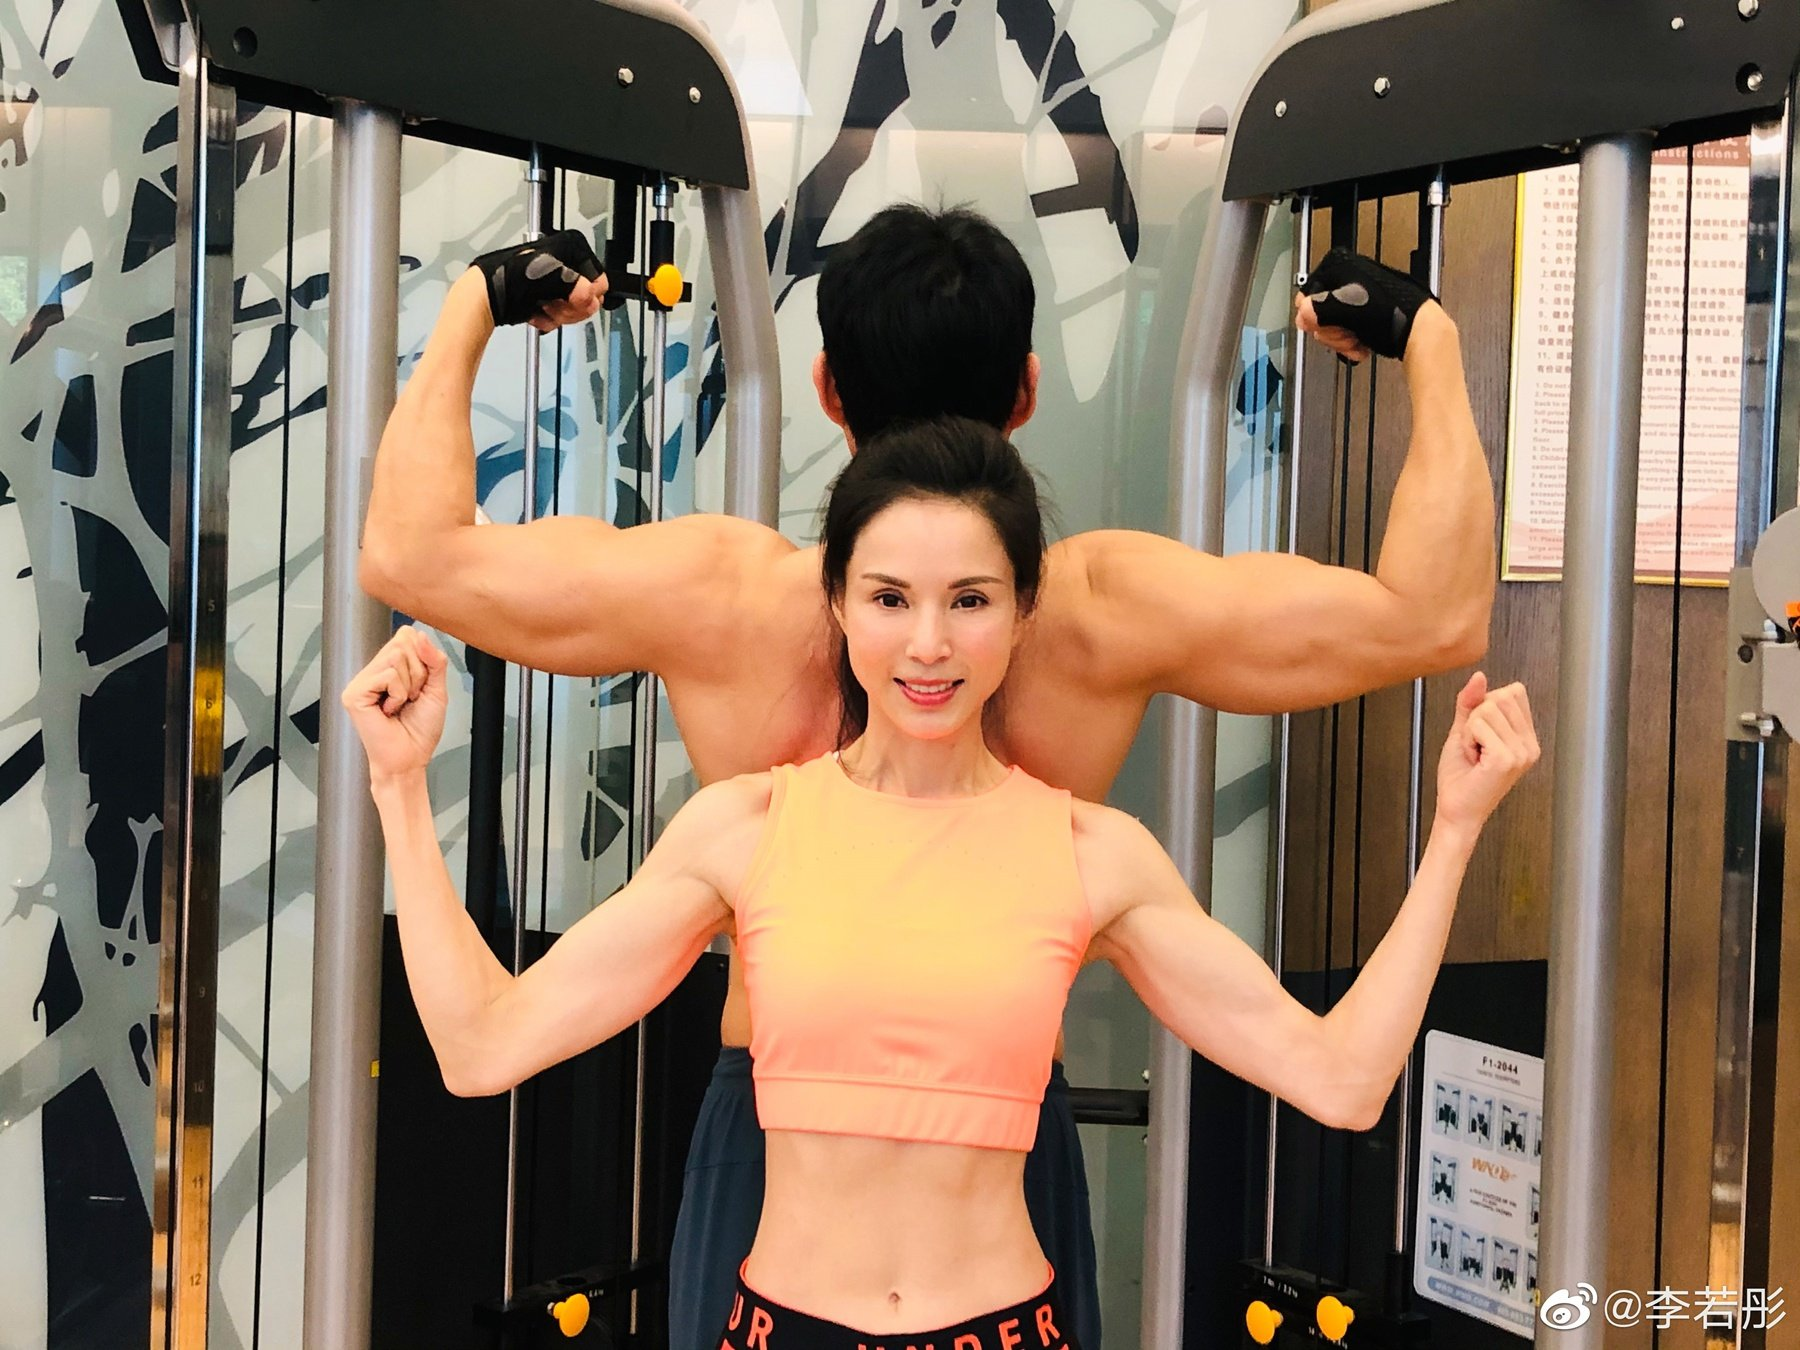 Cbiz beauties have a 'curse', despite being 40, their bodies are still 6 packs 'bouncy' 8